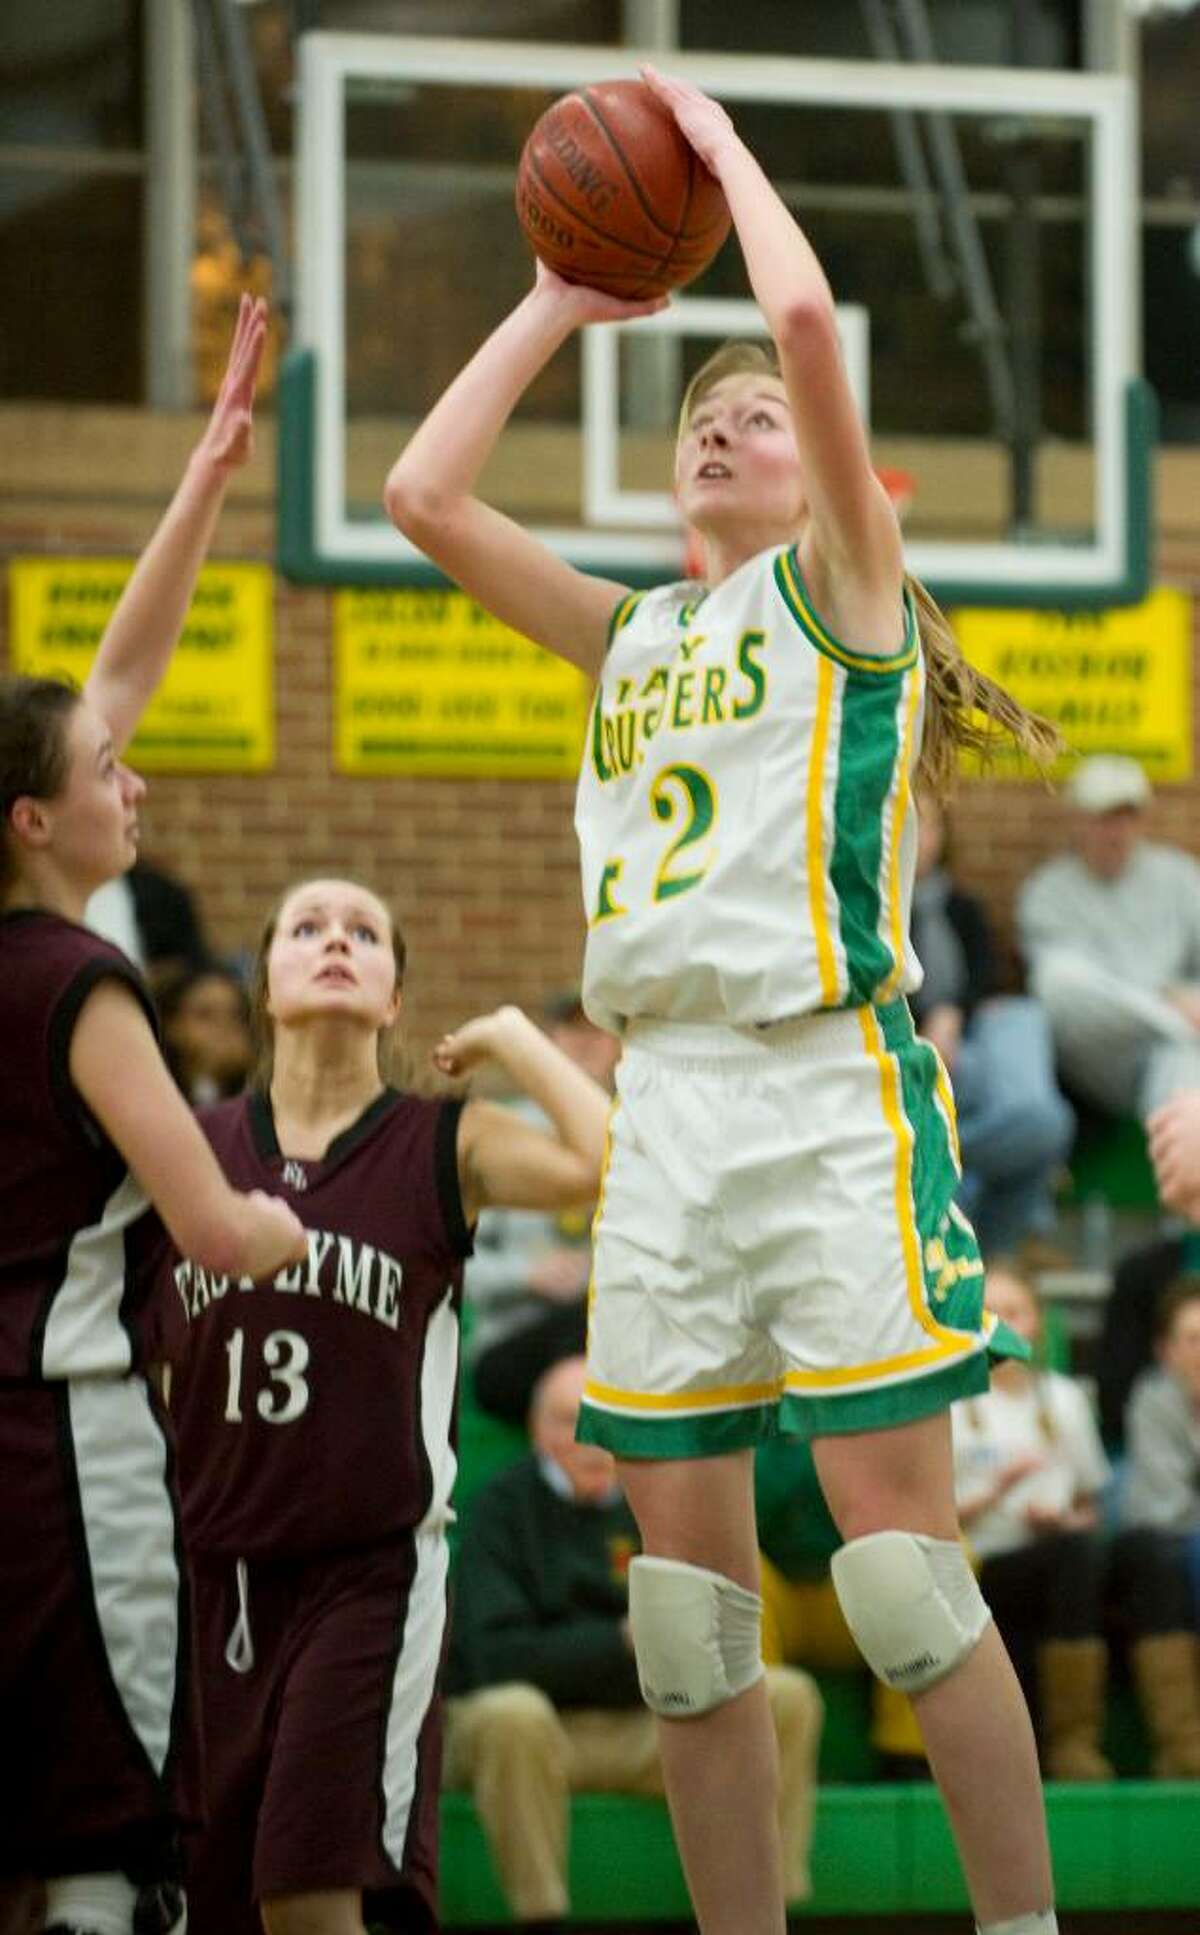 Trinity's Mackenzie Griffin shoots during the the first round of the 2010 CIAC Class L girls basketball tournament at Trinity Catholic High School in Stamford, Conn. on Monday, March 1, 2010.